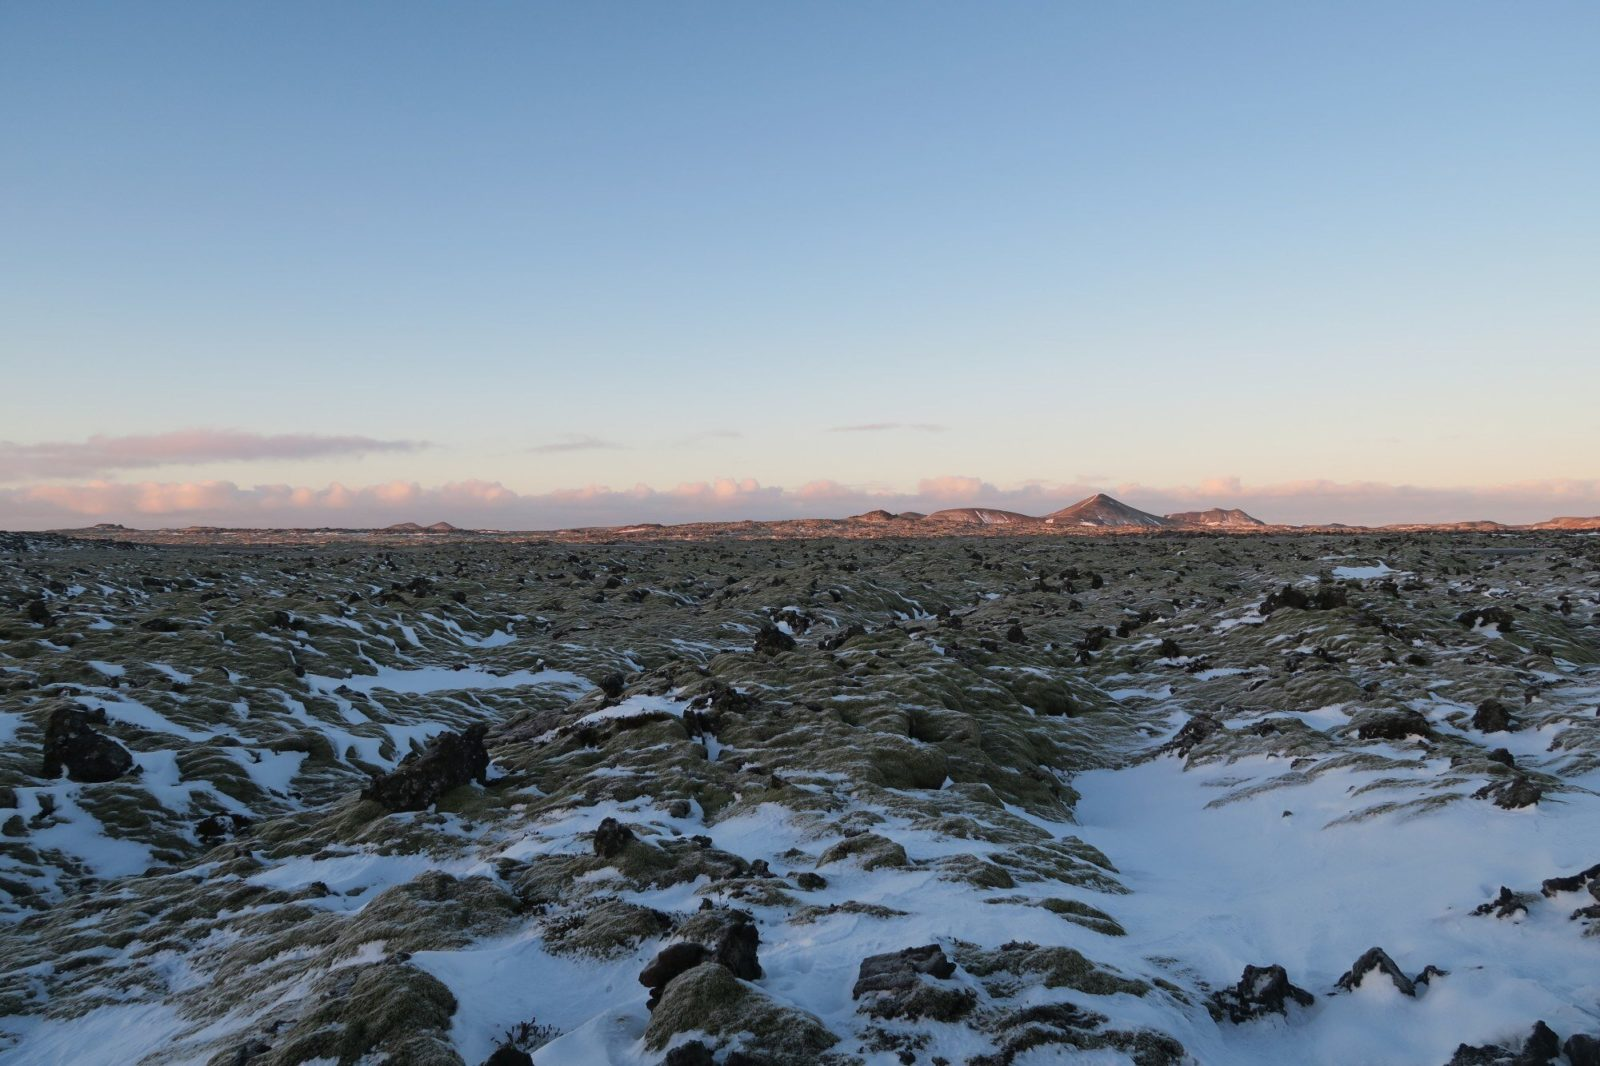 In case you were wondering, this is Iceland in winter.